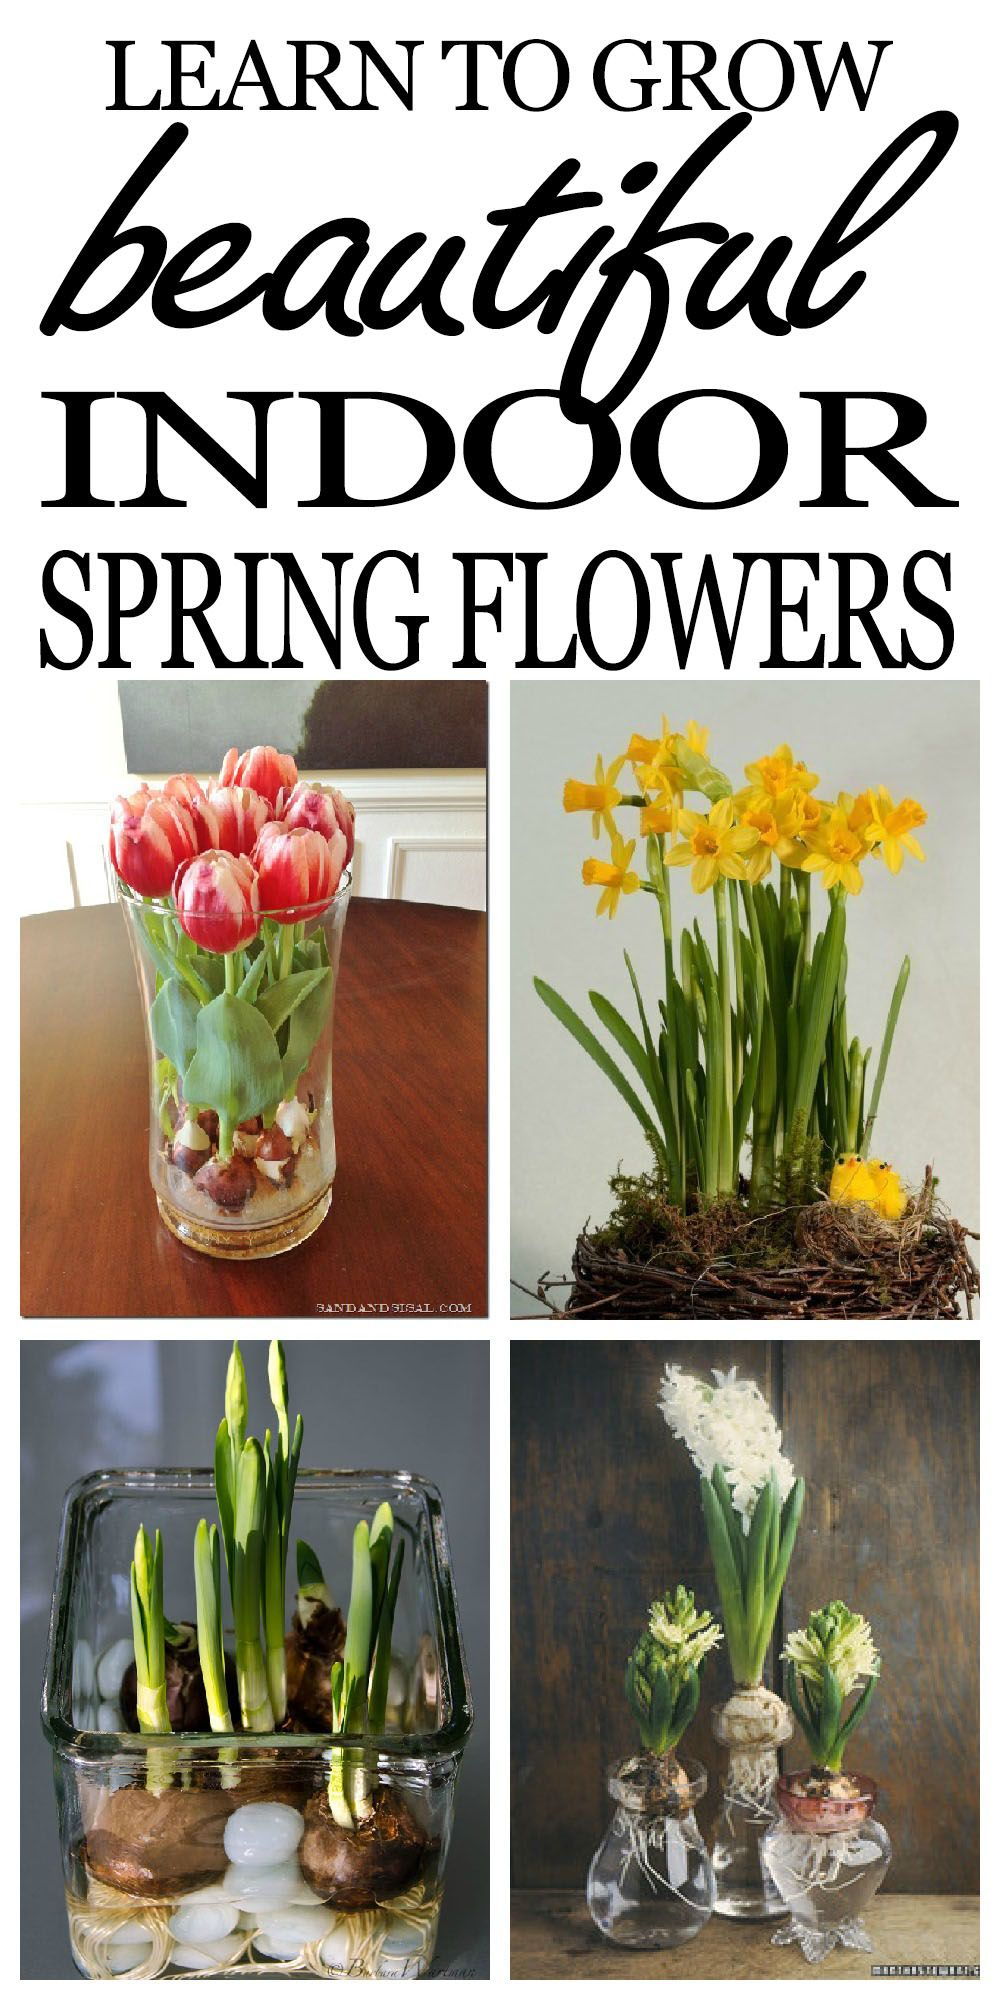 Learn to plant potted bulbs indoors and force them to flower for learn to plant potted bulbs indoors and force them to flower for beautiful spring dcor forcing bulbs indoors in winter is simple mightylinksfo